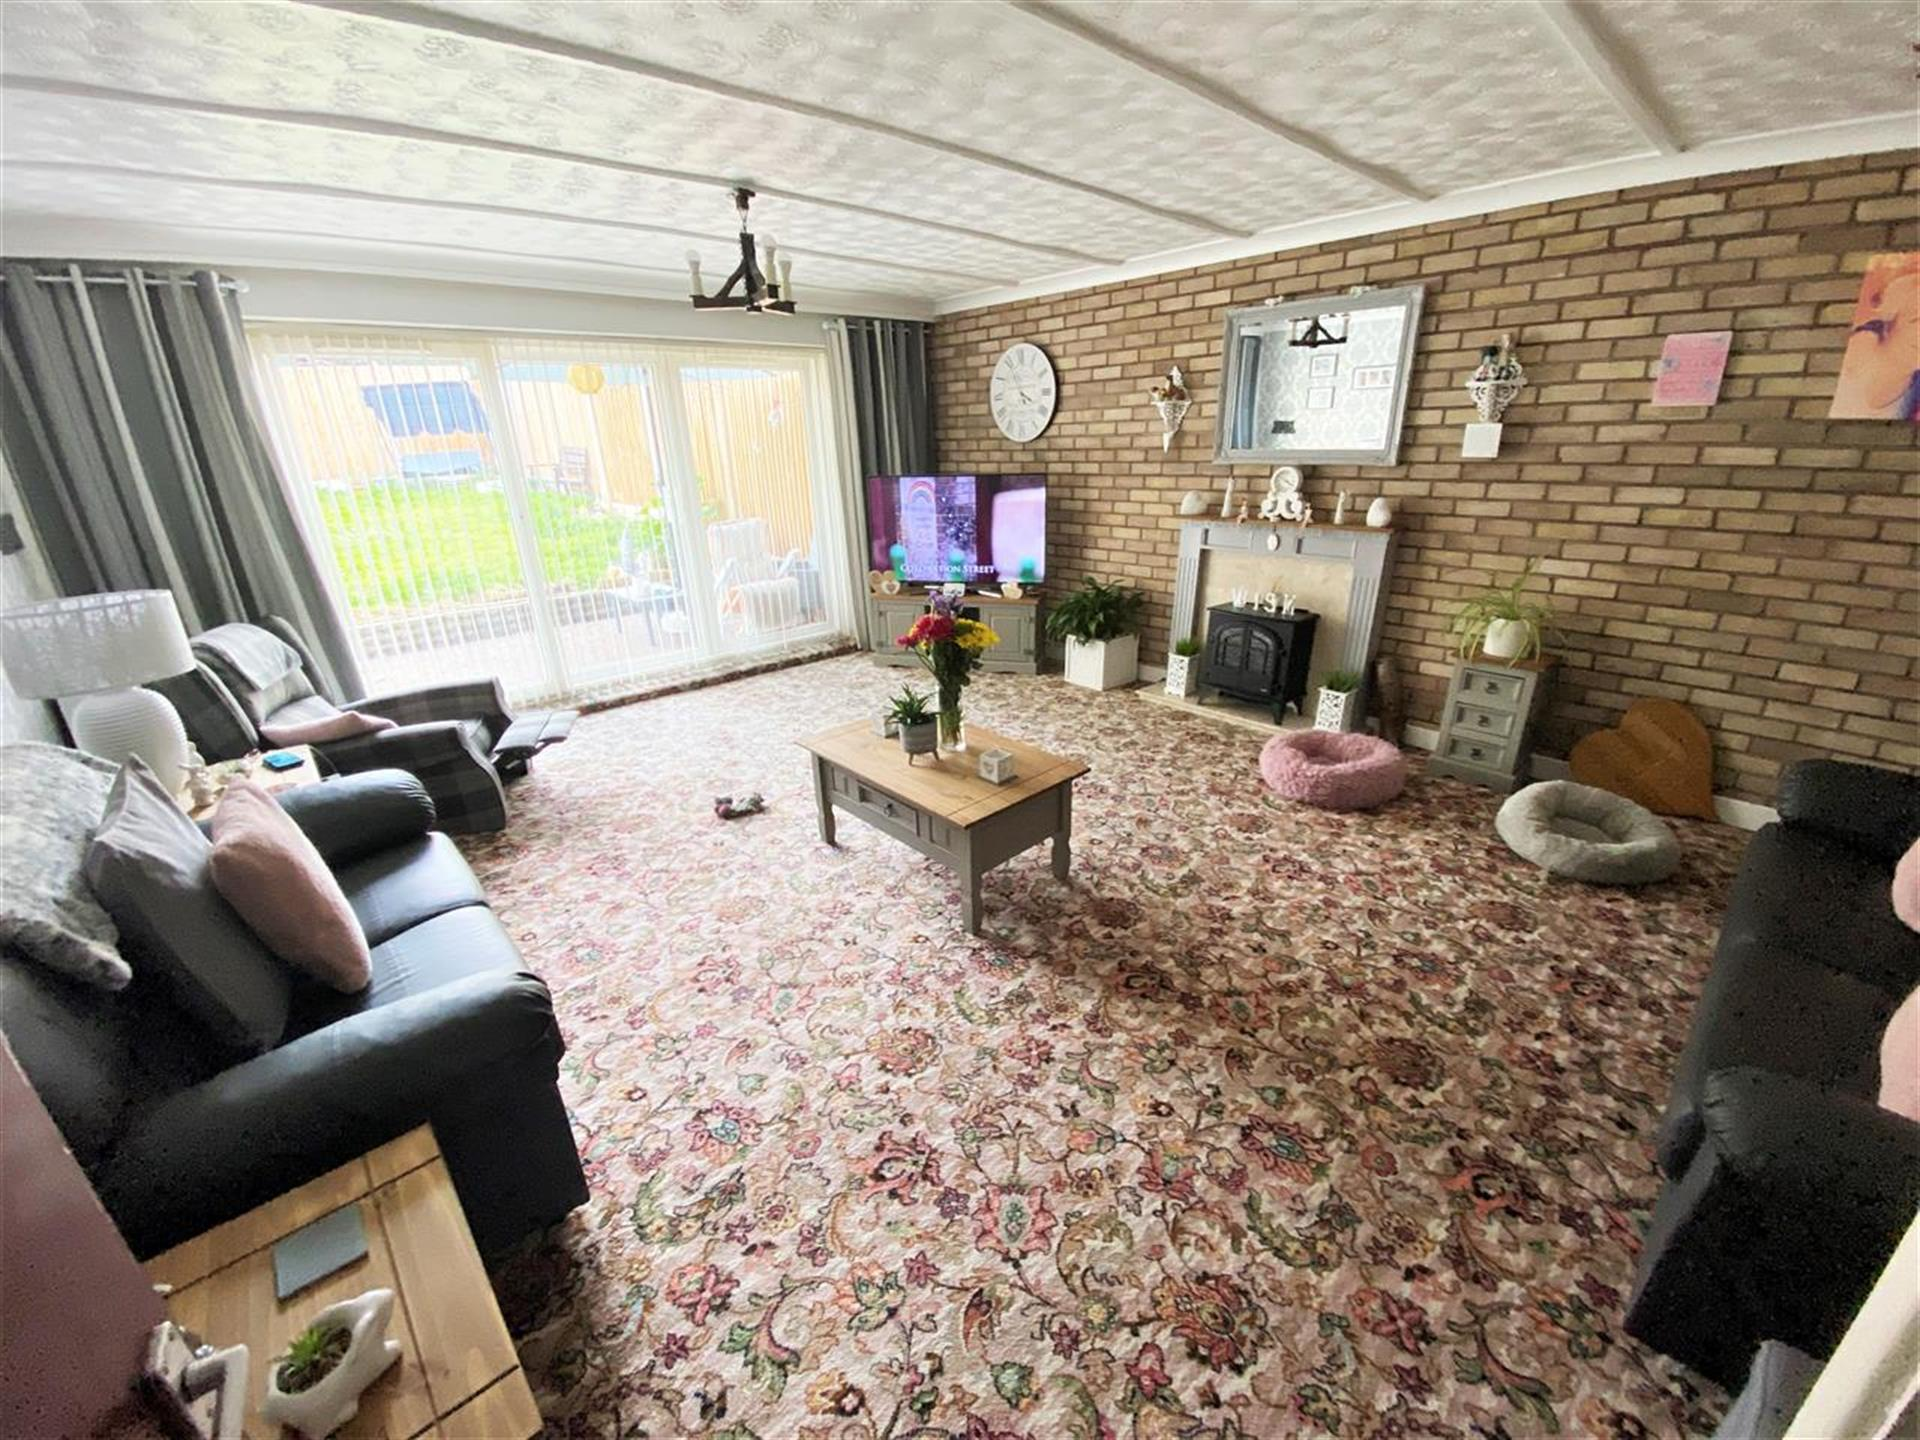 2 Bedroom Bungalow For Sale - Lounge